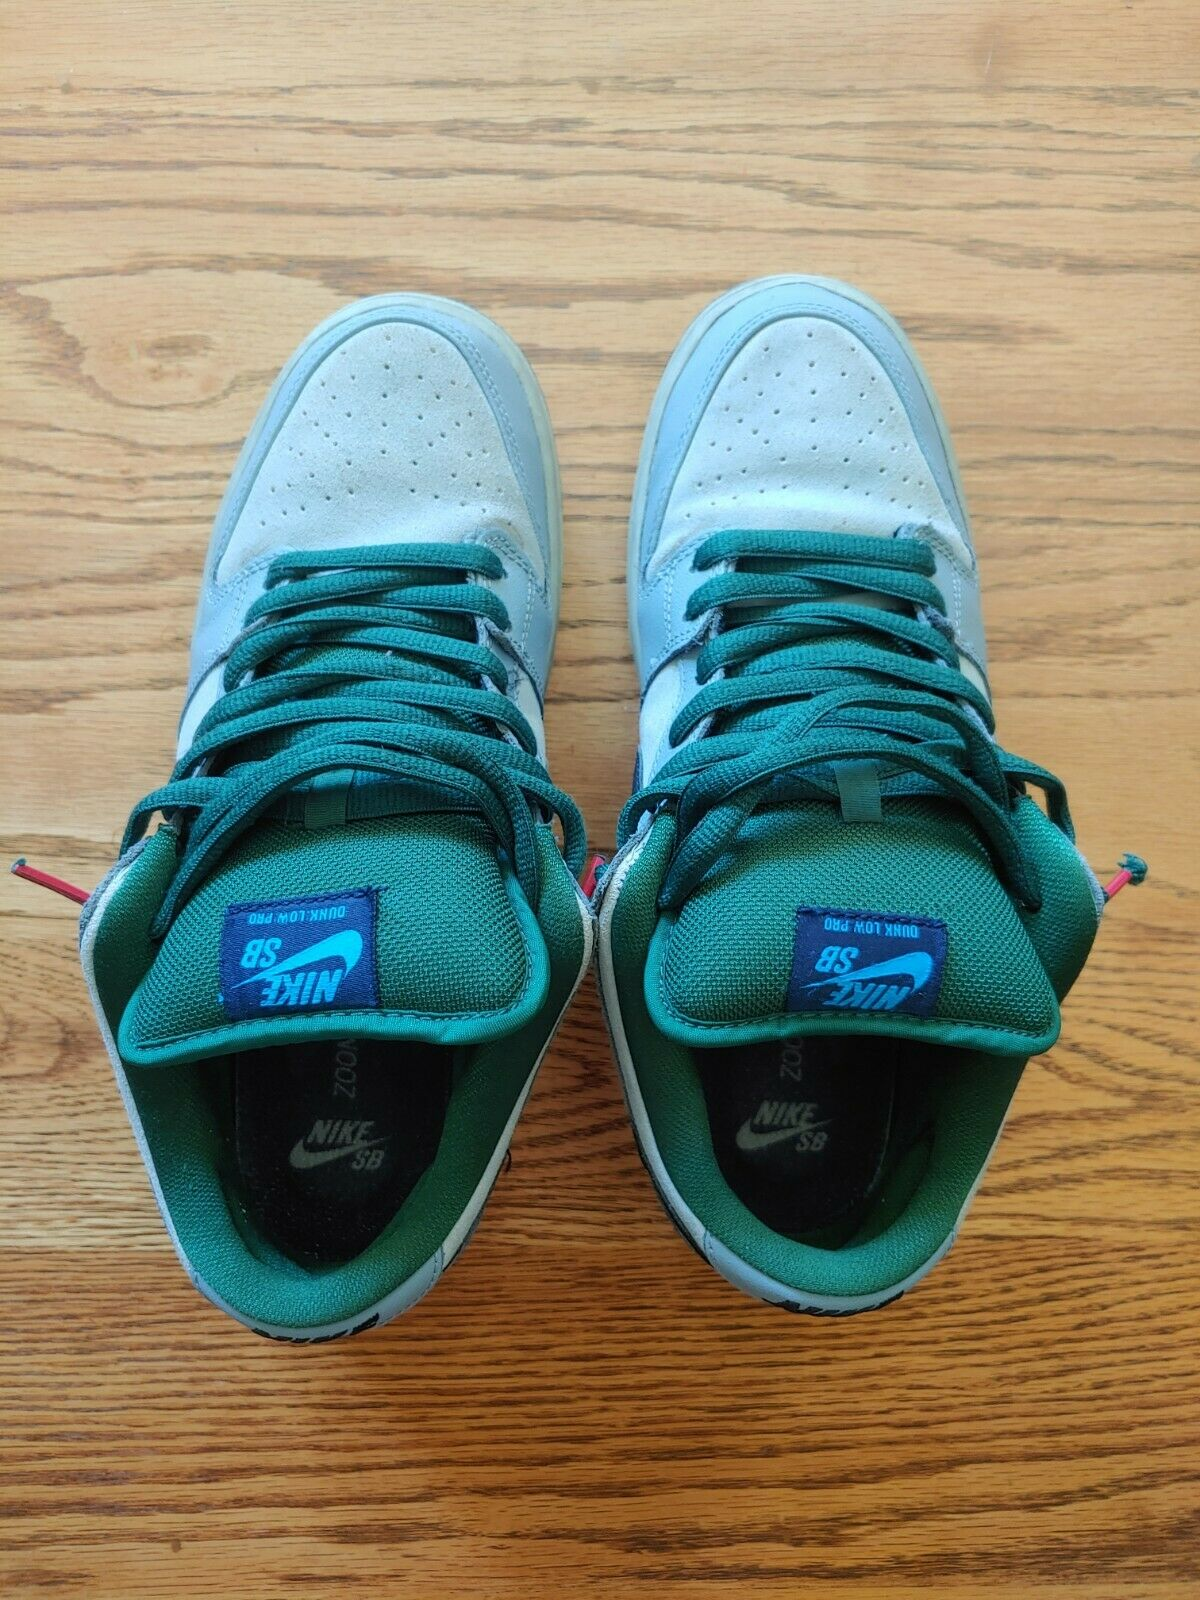 NIke SB Dunk Low Central Park Green